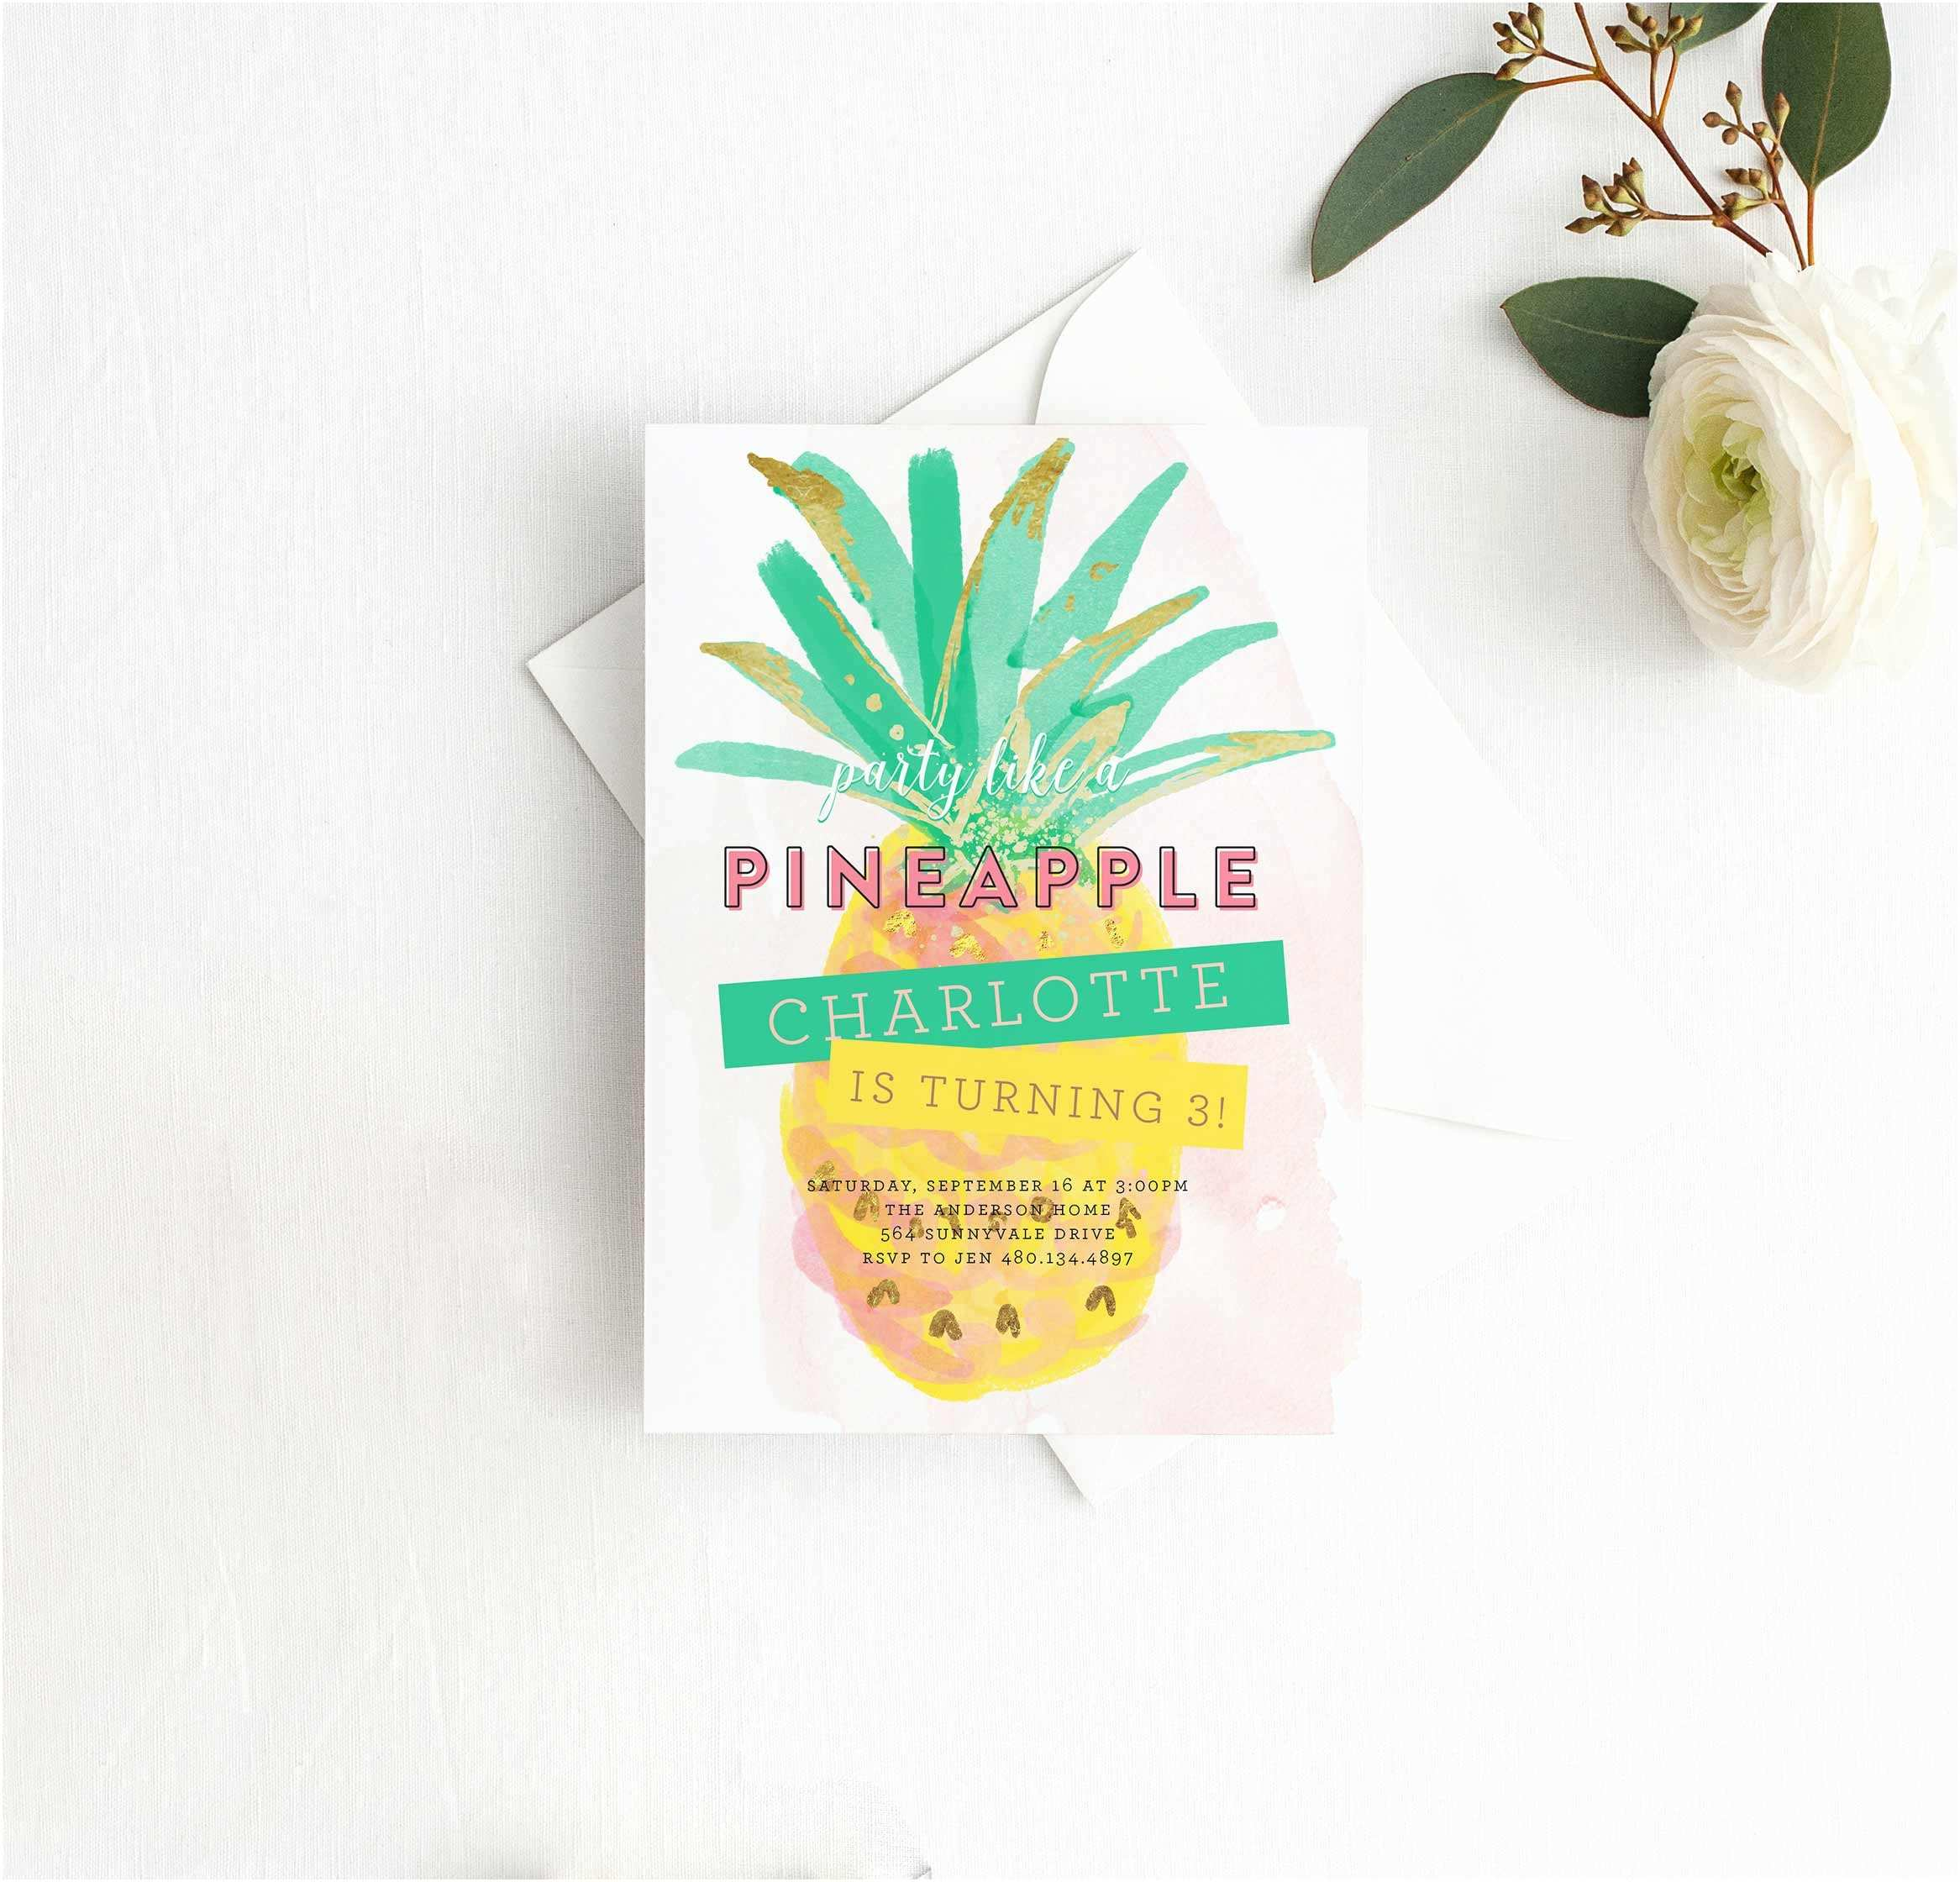 Pineapple Party Invitations Party Like A Pineapple Birthday Party Invitation